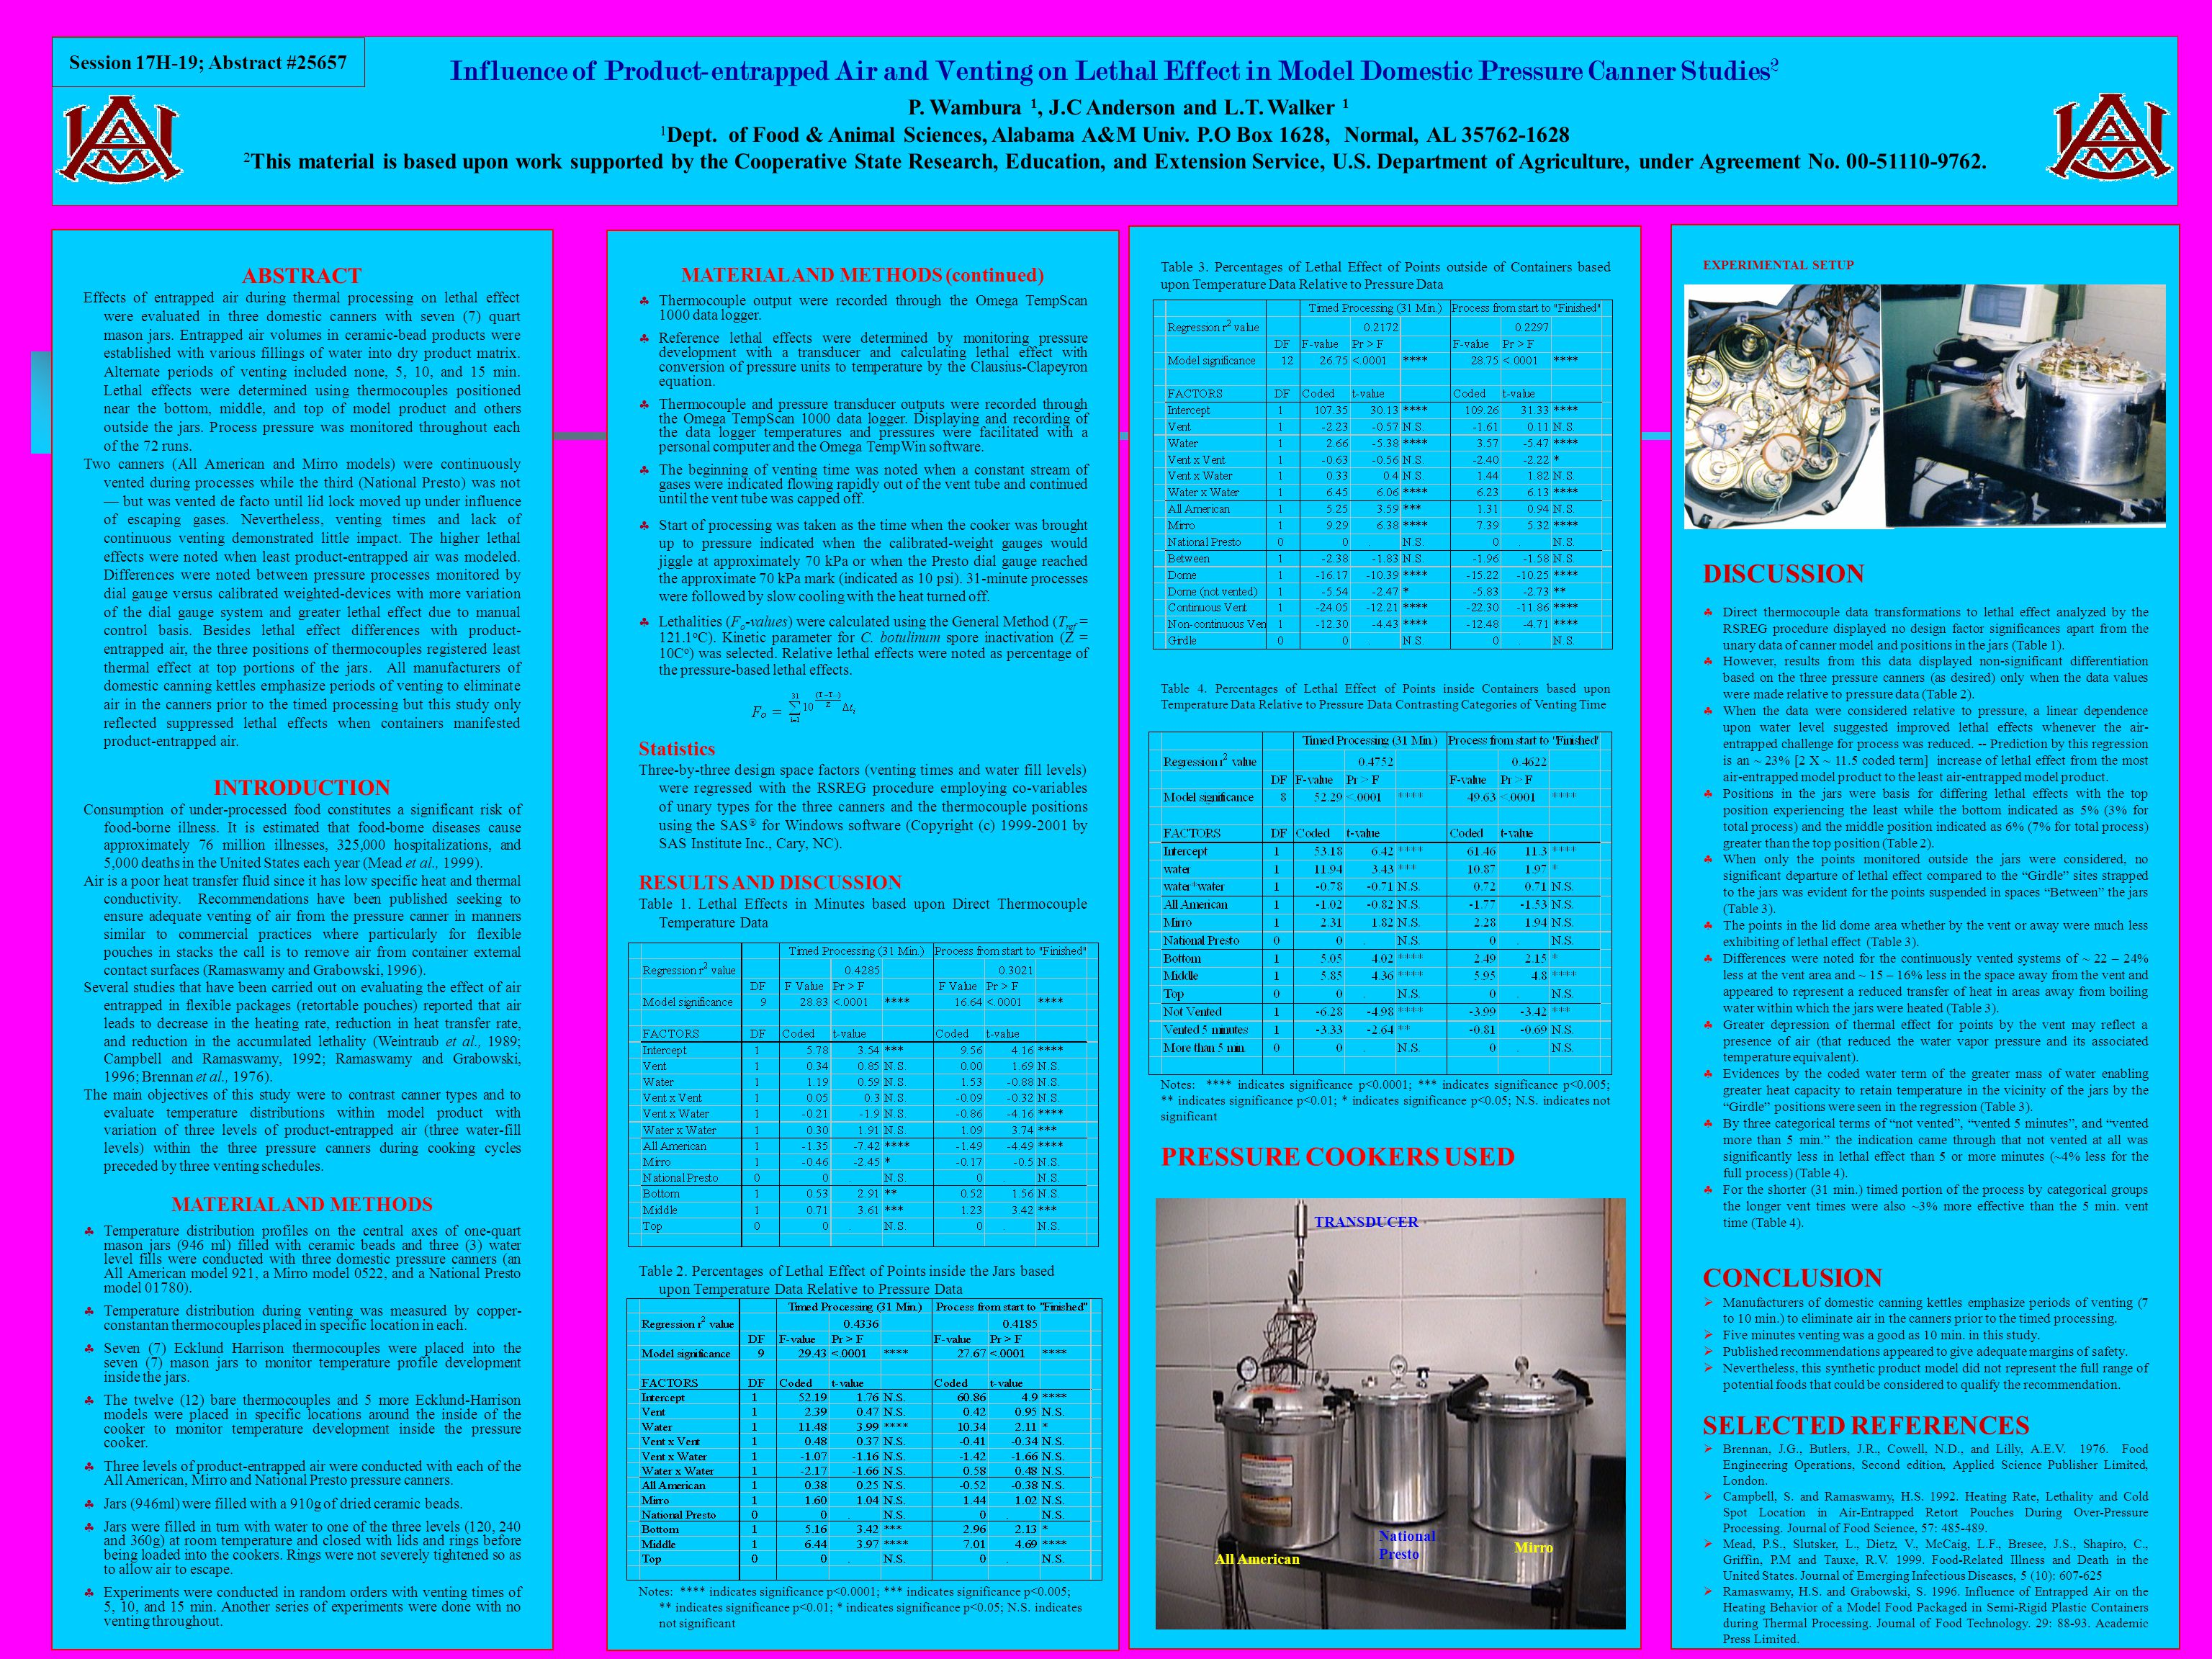 Influence of Product-entrapped Air and Venting on Lethal Effect in Model Domestic Pressure Canner Studies 2 P. Wambura 1, J.C Anderson and L.T. Walker